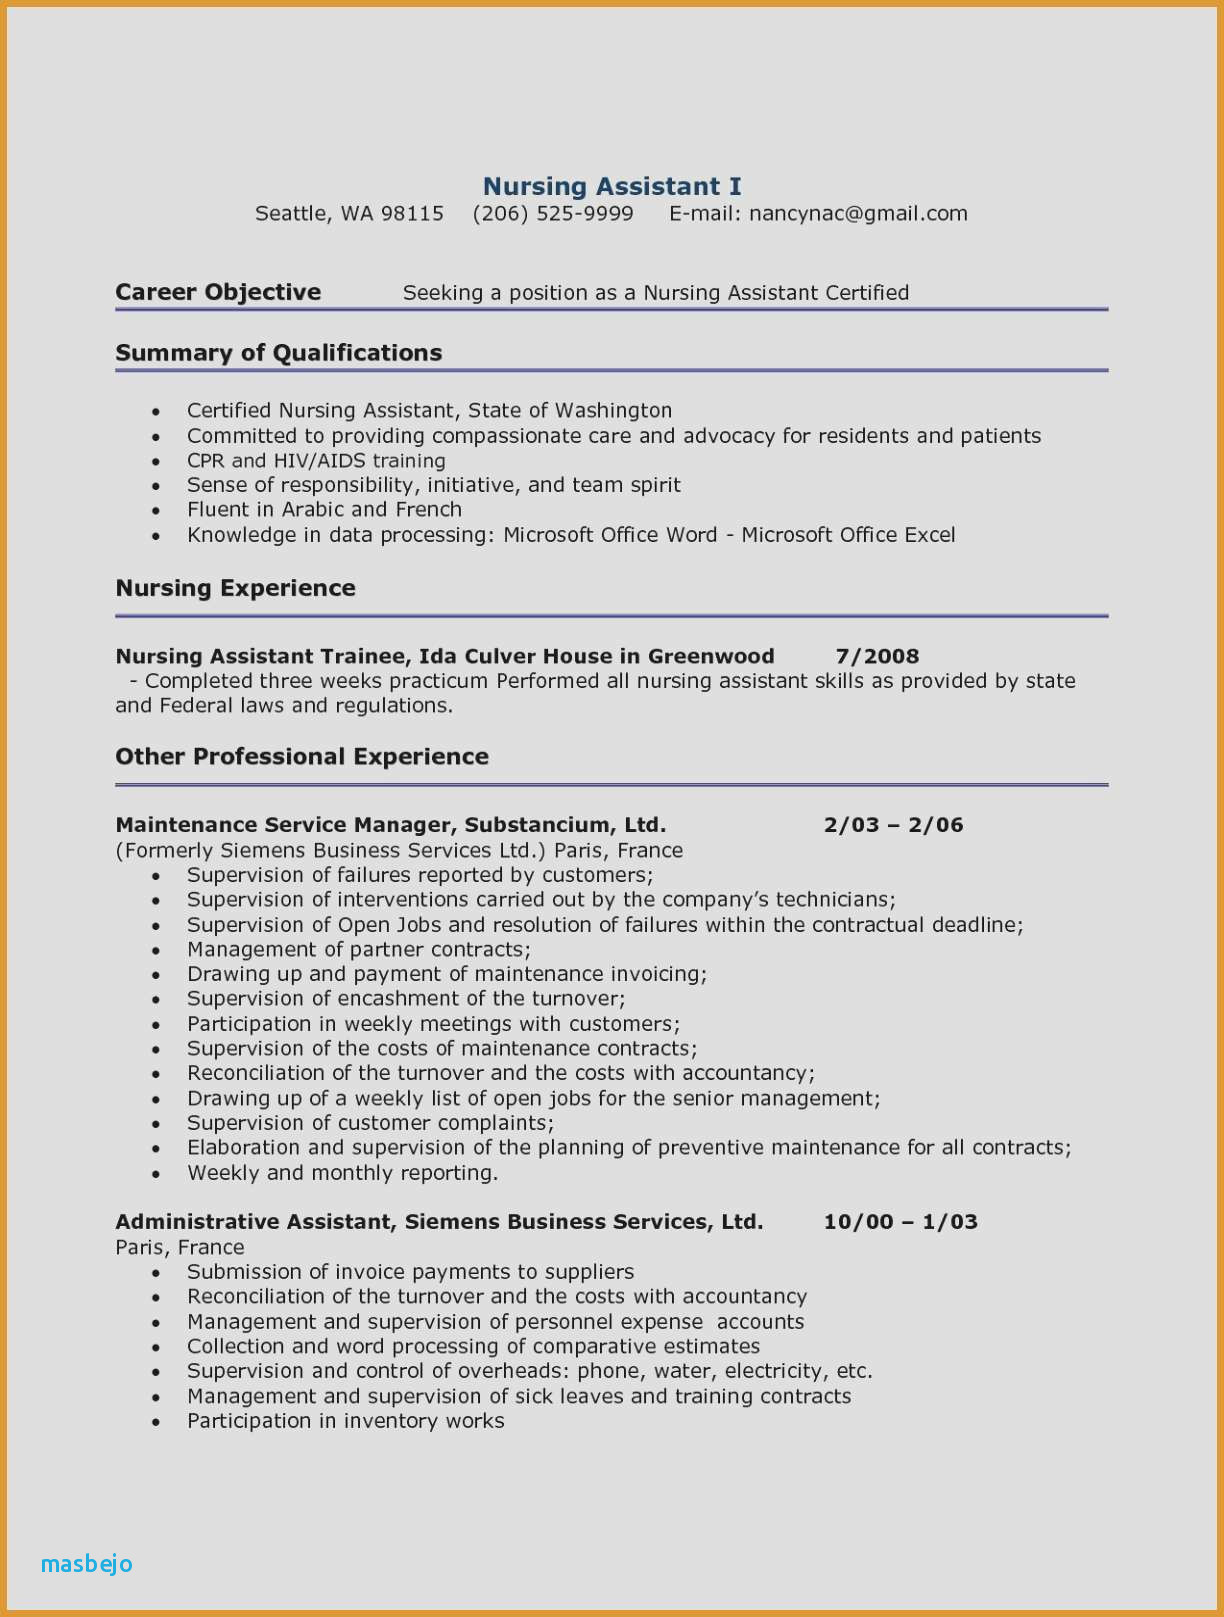 Resume How to Spell - How Do You Spell Resume Current Resume Trends Elegant Languages